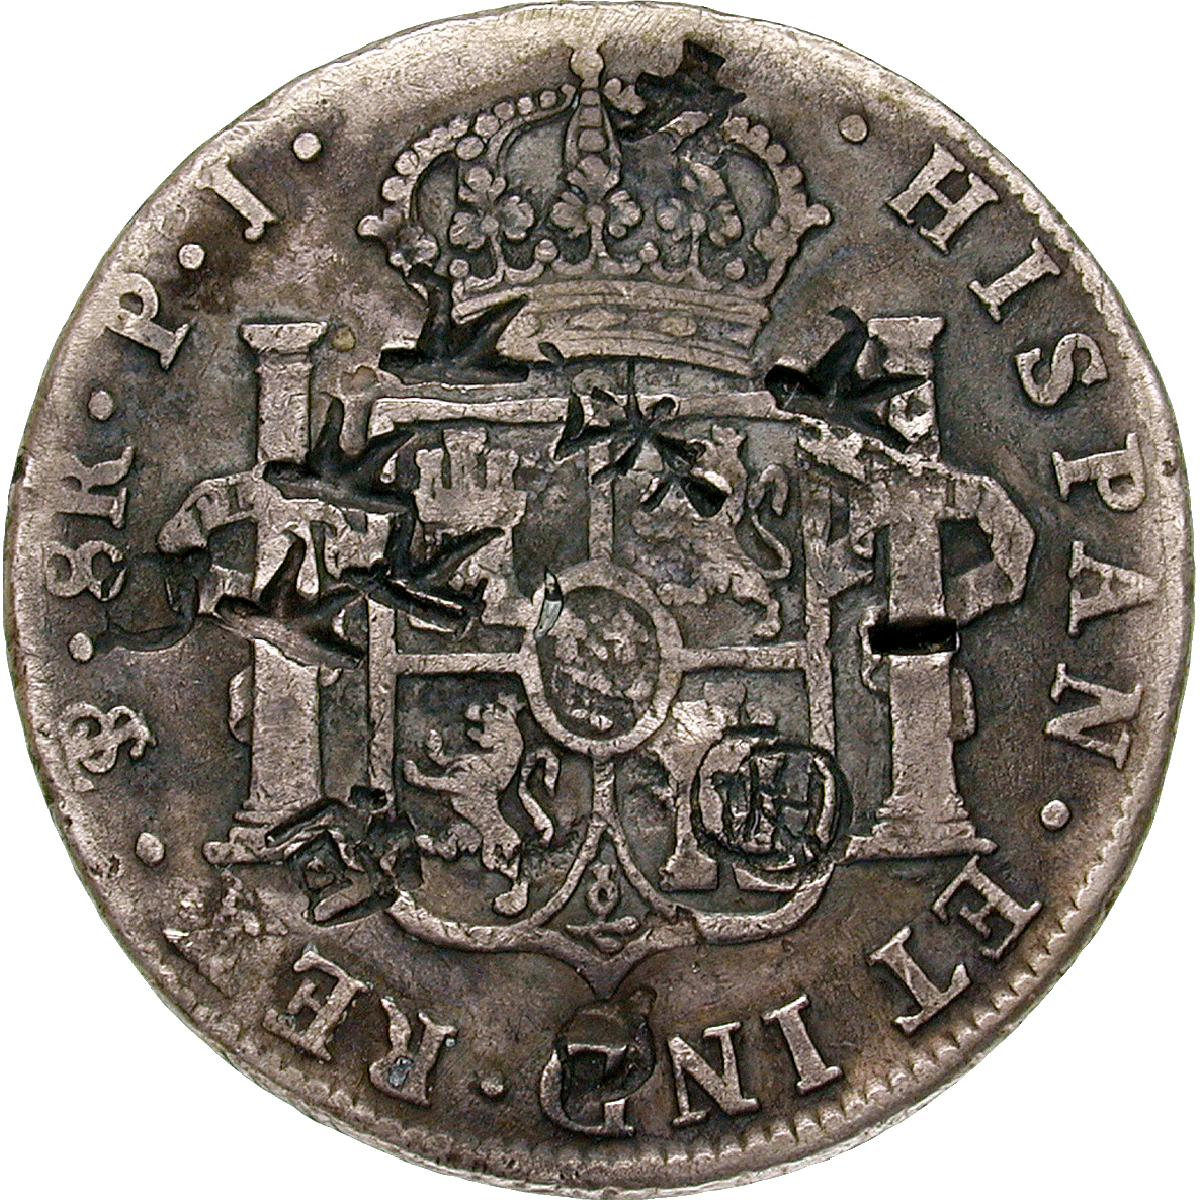 Chinese Empire, Charles III. of Spain, Real de a ocho (Peso) 1808 with Chinese Countermarks (reverse)